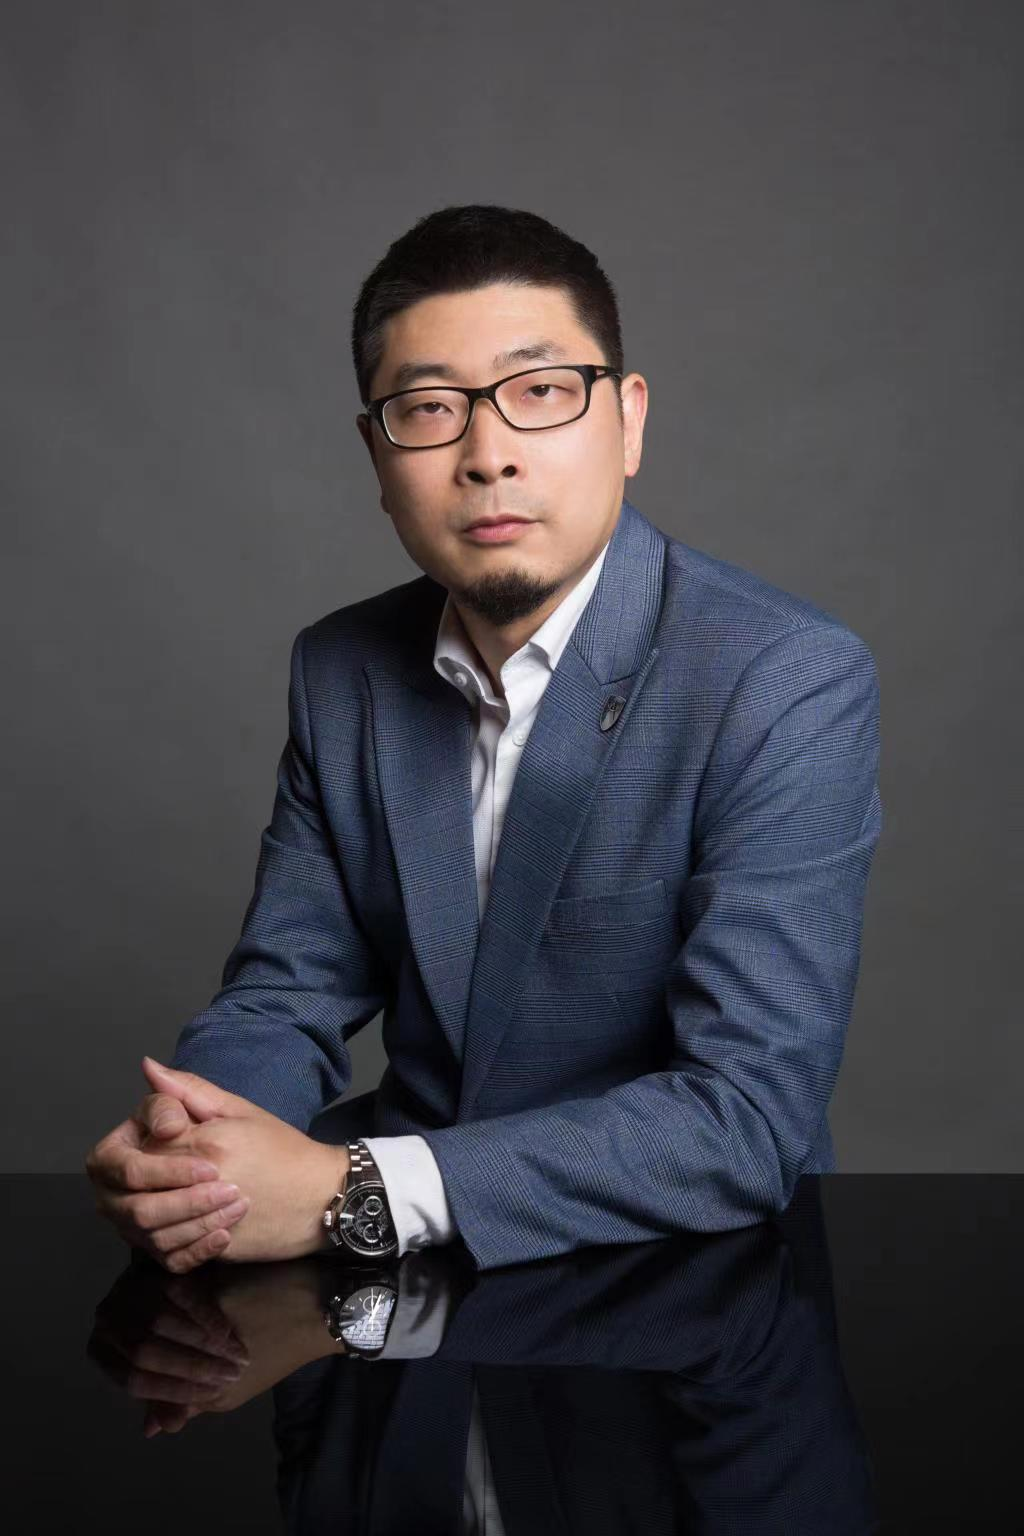 AFMG Announces the Appointment of Mr. Frank Fan as Chief Executive Officer, Apollo EV (China)